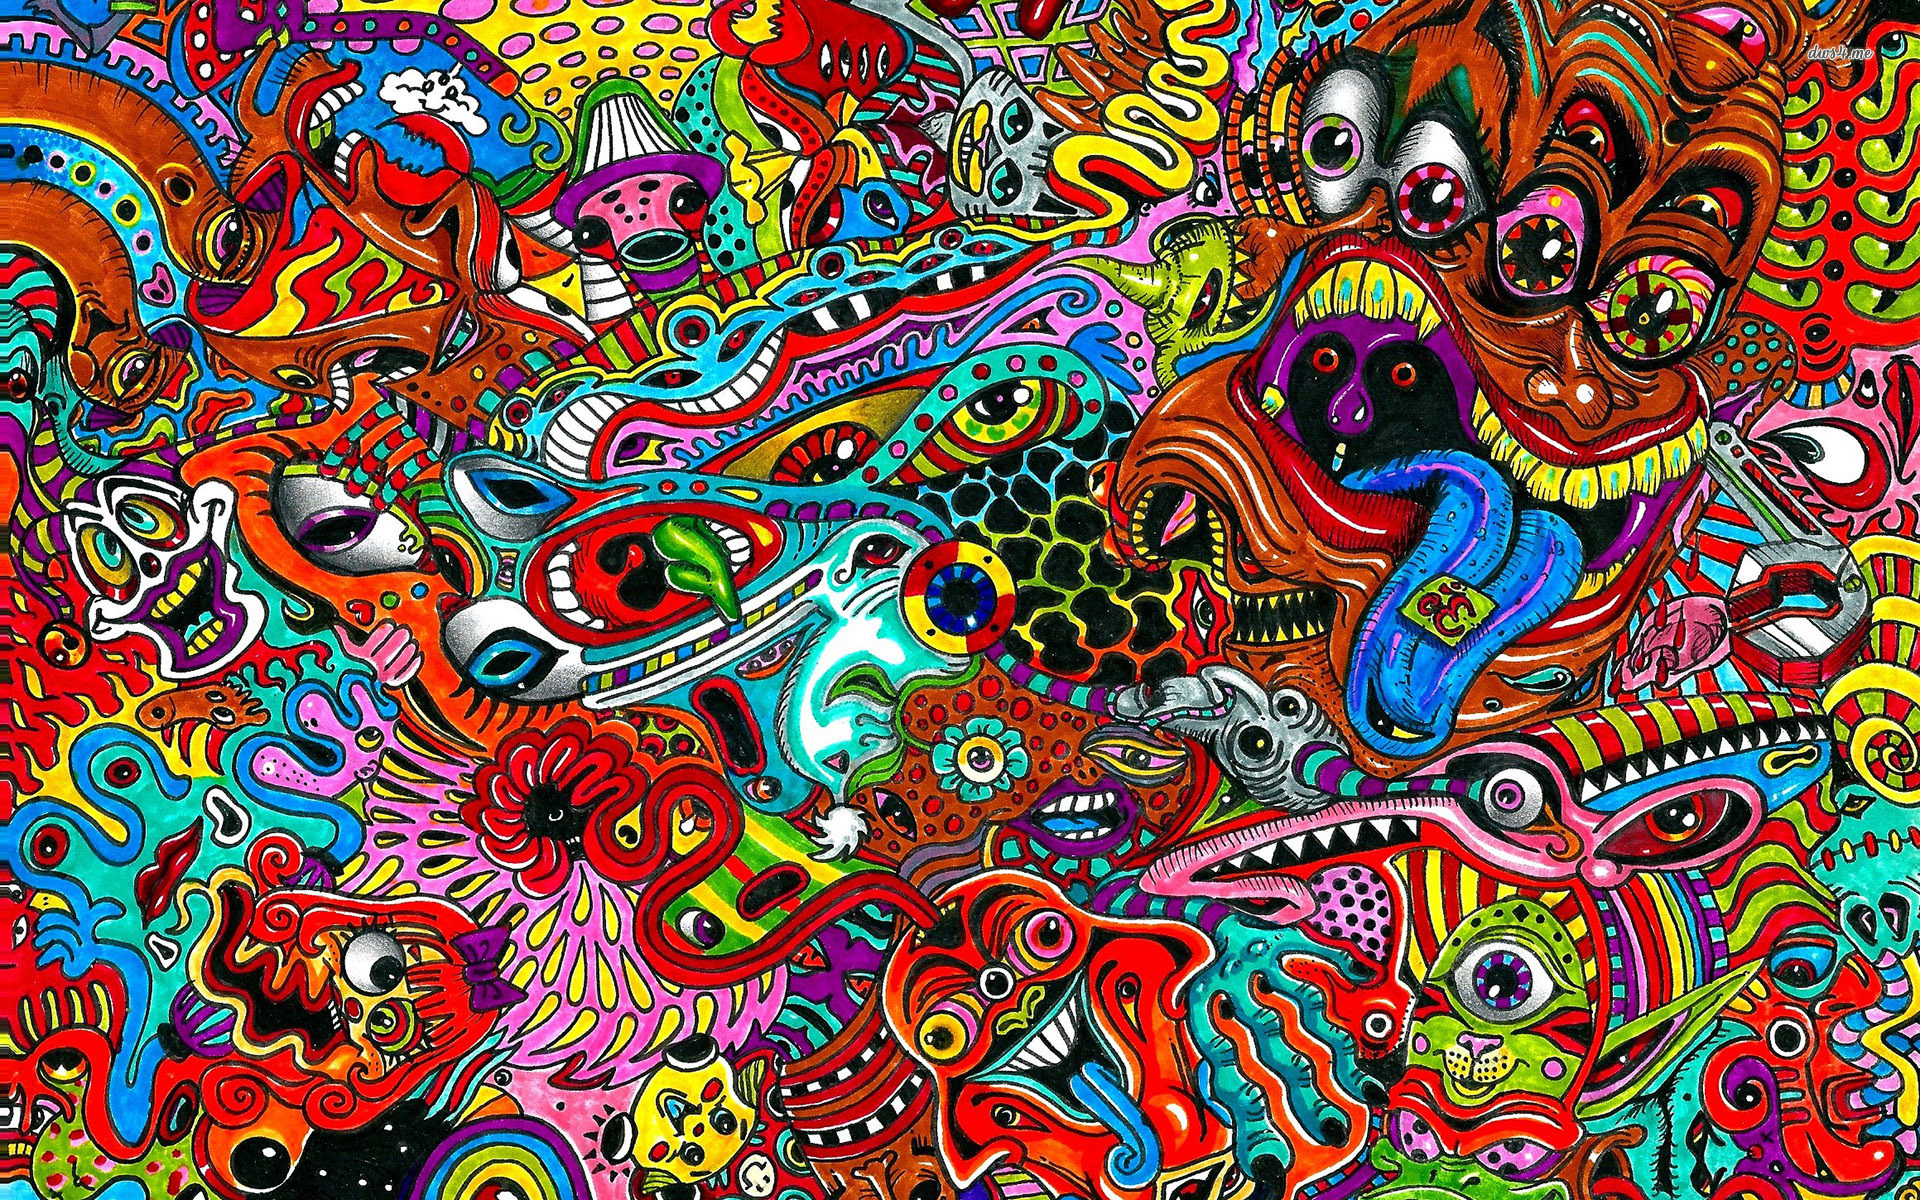 Triipy clipart hd wallpaper Psychedelic para psychedelic WallpaperWallpapersTrance Psicodélicas